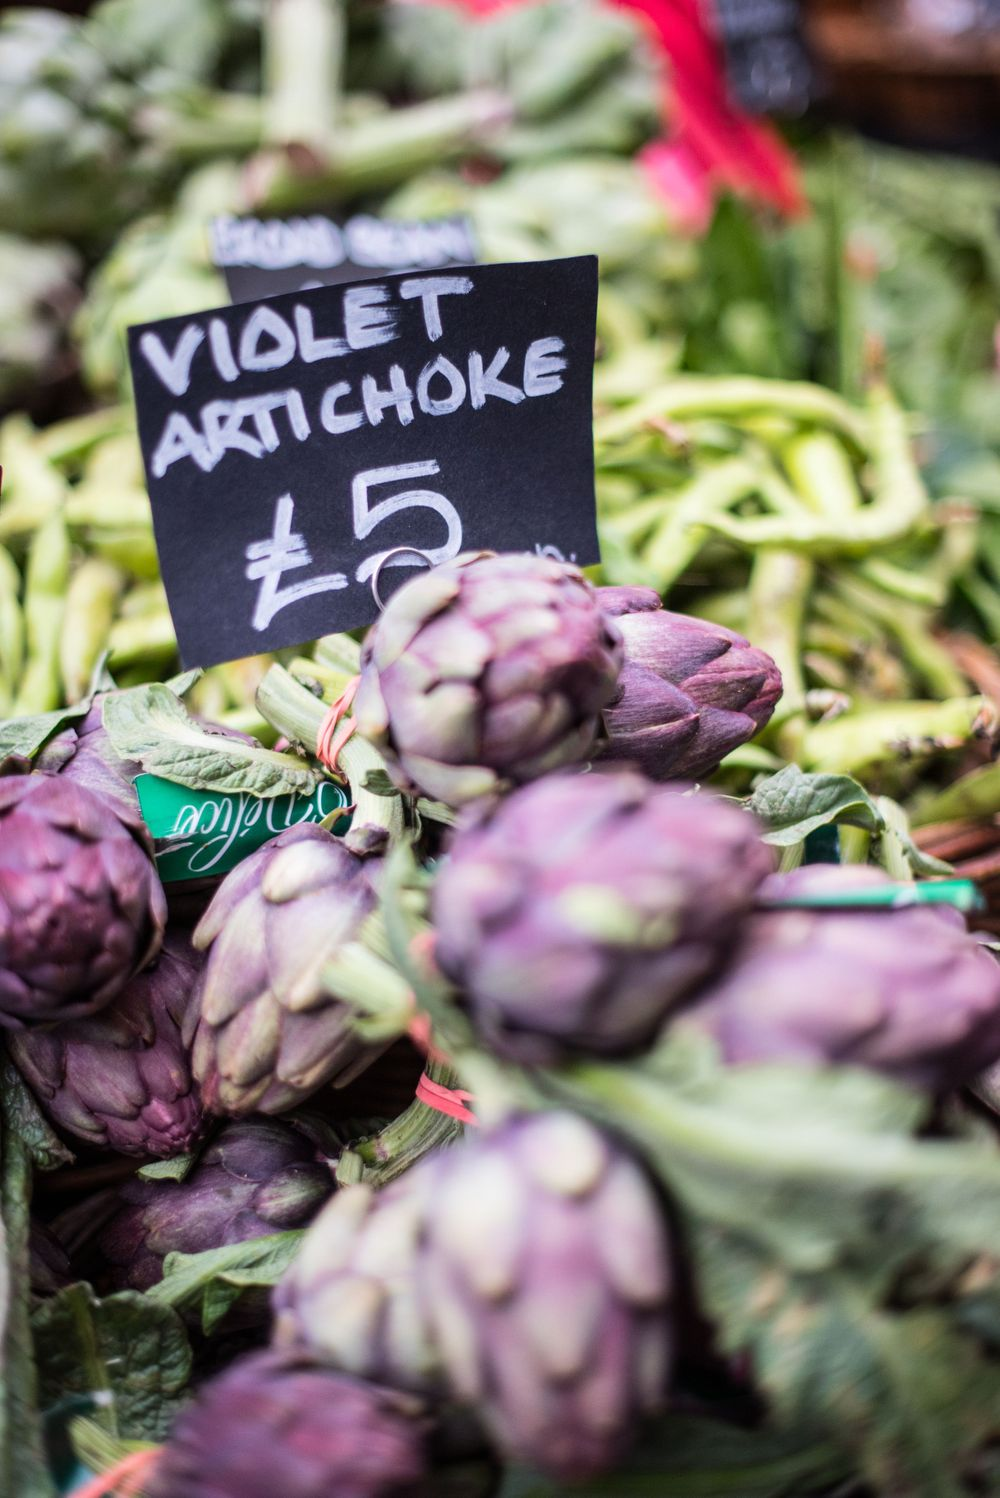 Violet artichoke display at Borough Market, London